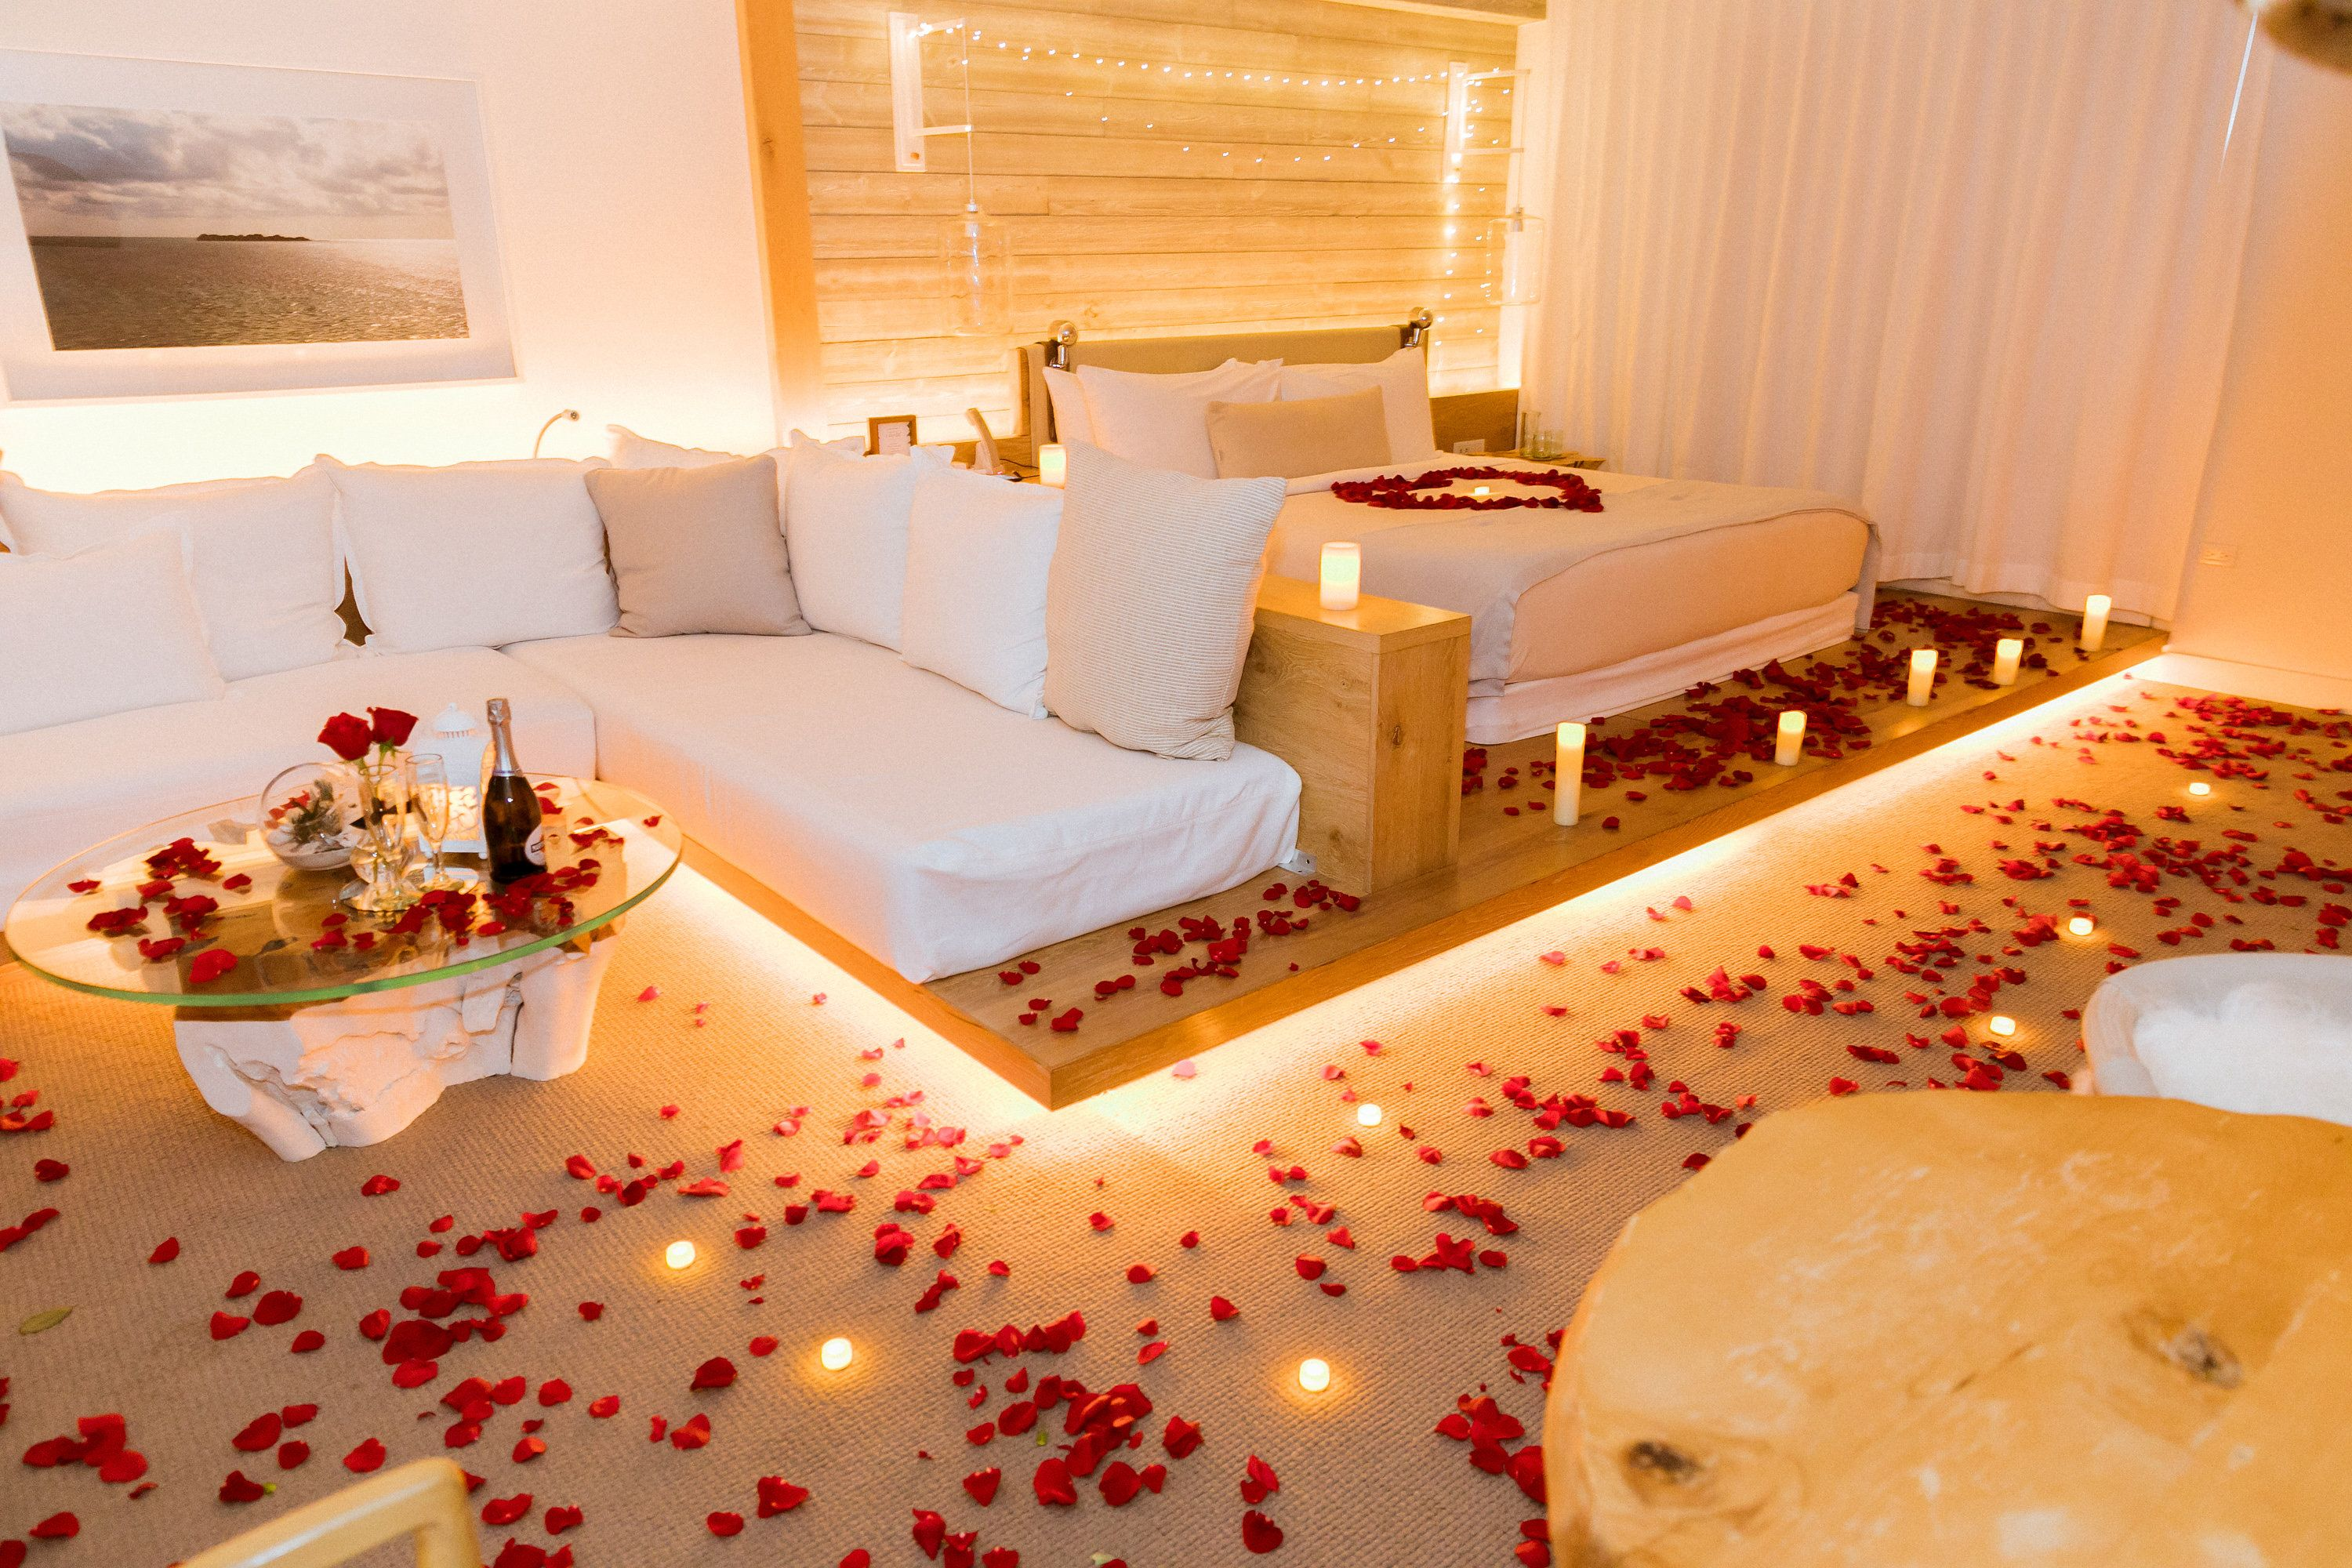 The Romantic Hotel Room Decoration In 1 Hotel Miami Real Rose